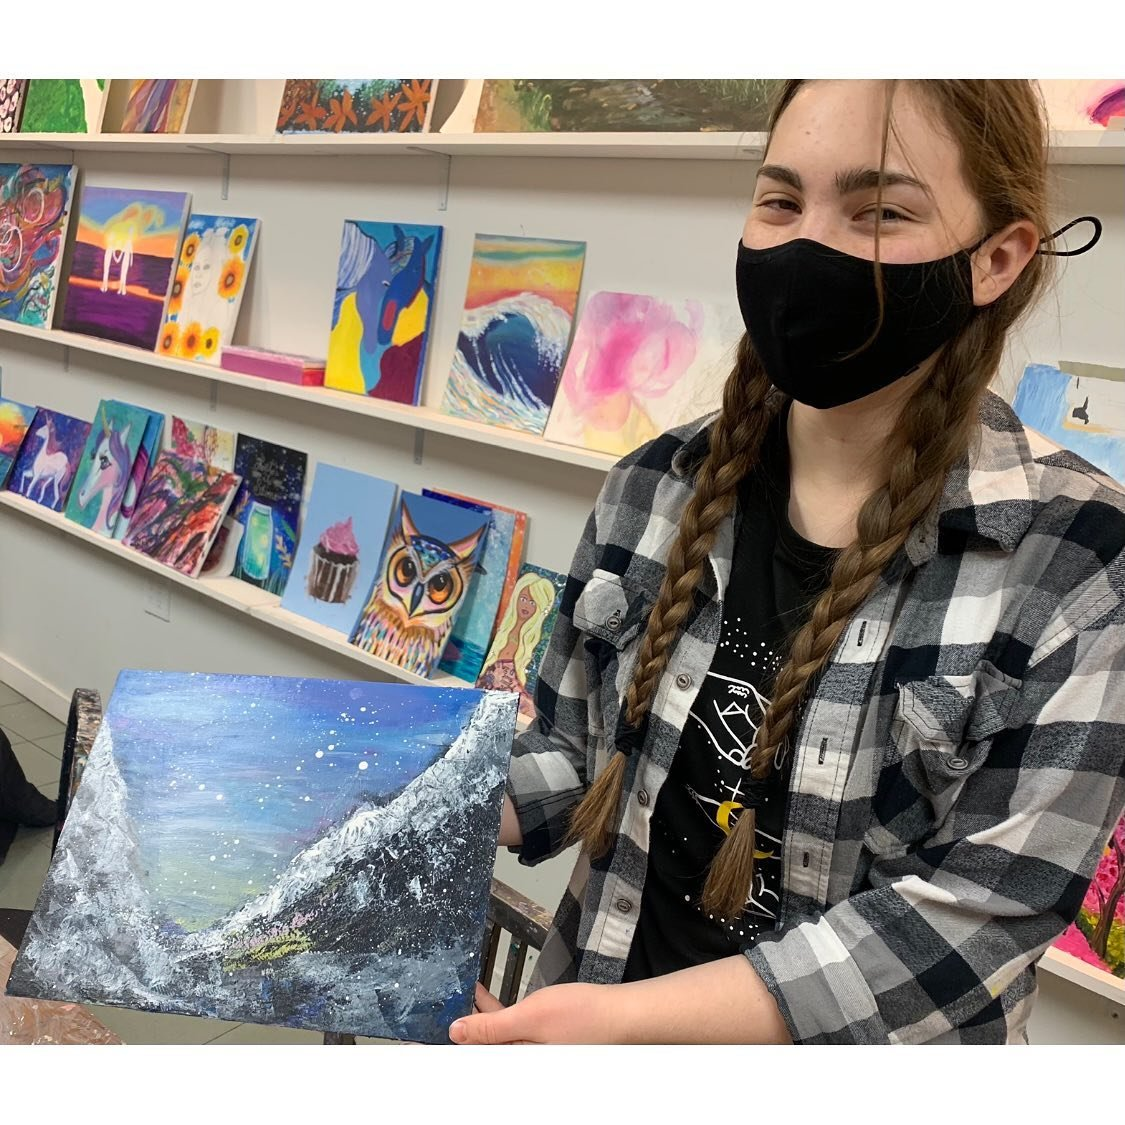 Adela Schwarz-Van Praag, age 16, was excited to be a part of the holiday art project.